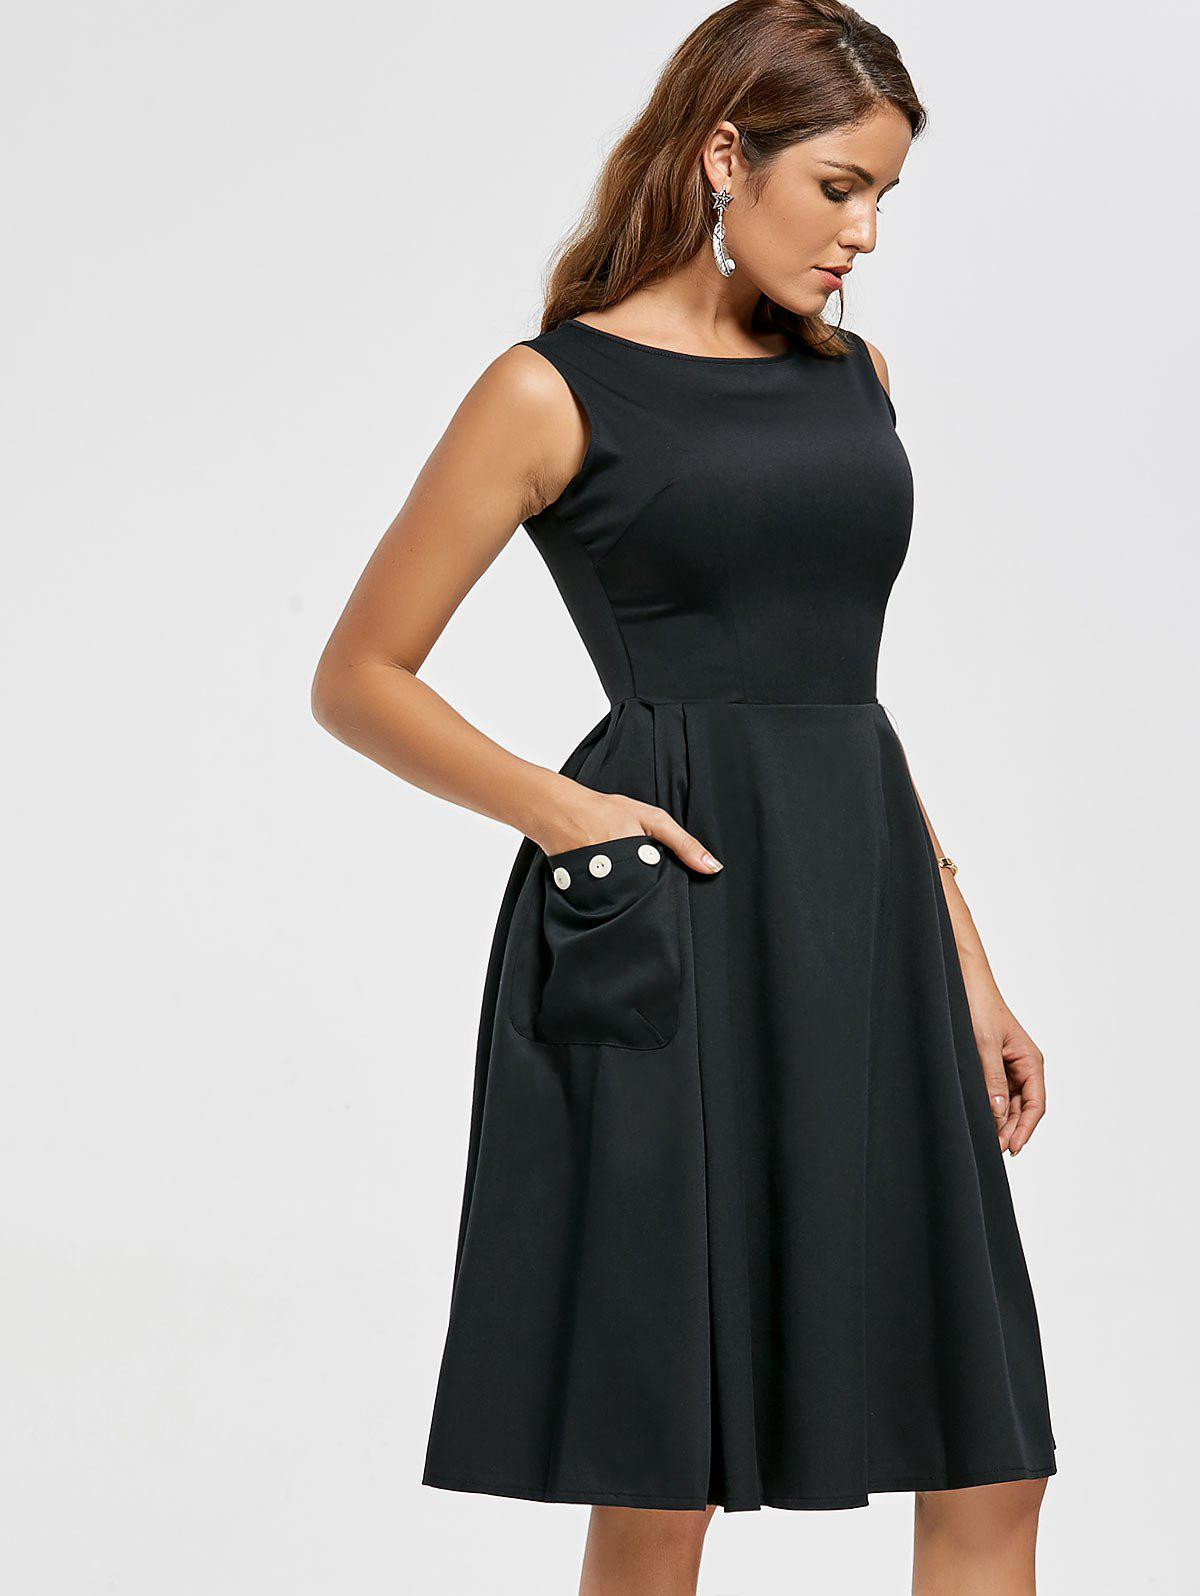 Pockets Fit and Flare Sleeveless Dress - BLACK S